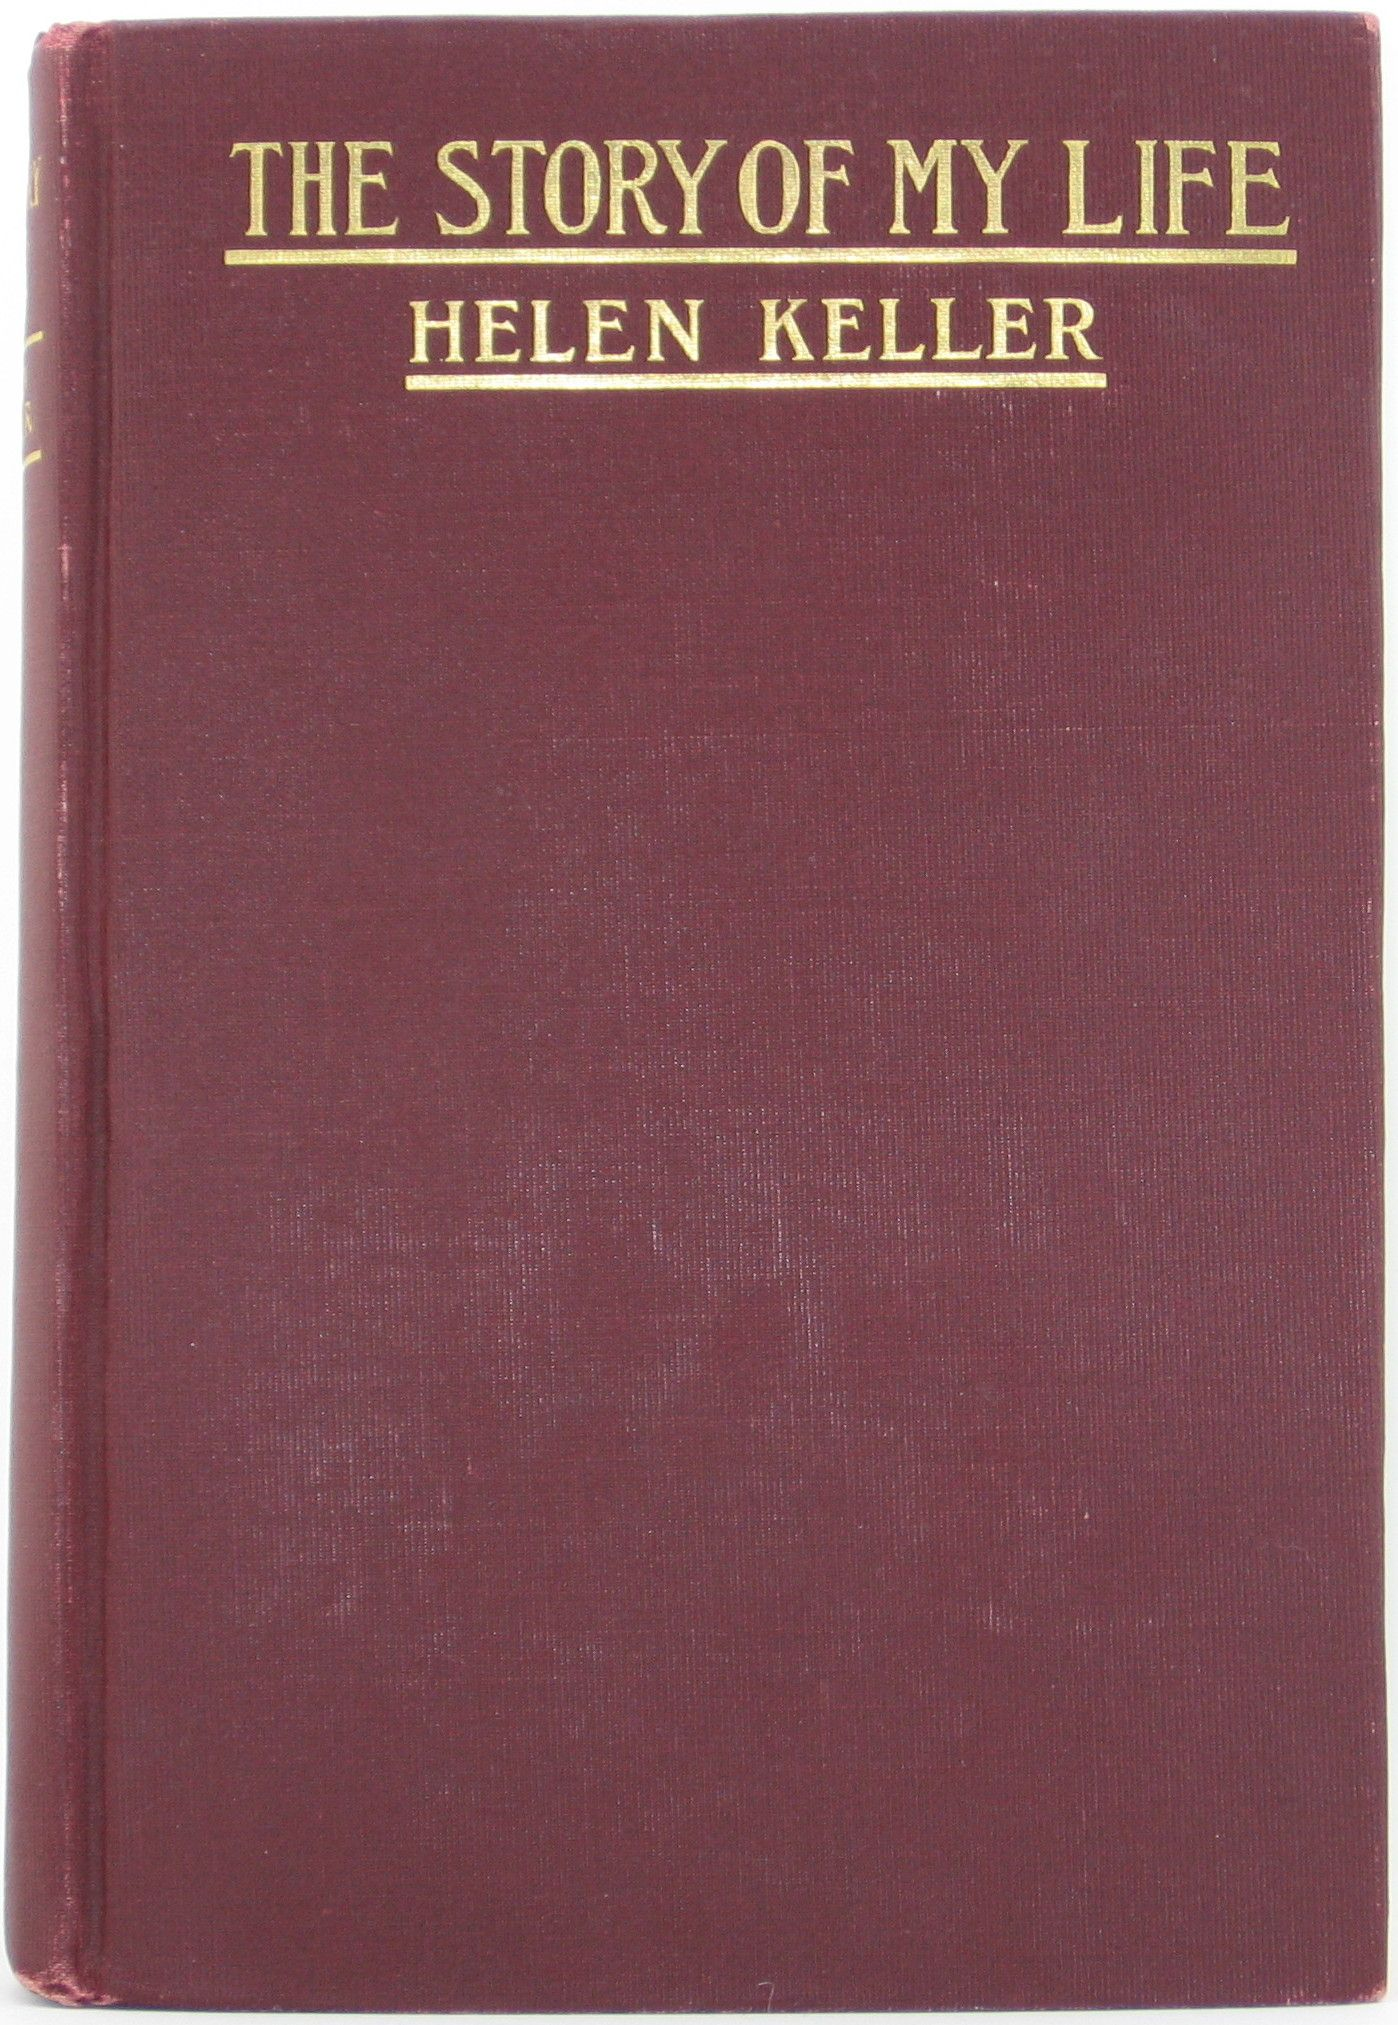 1903 1st Edition Helen Keller The Story Of My Life Vg Illustrated